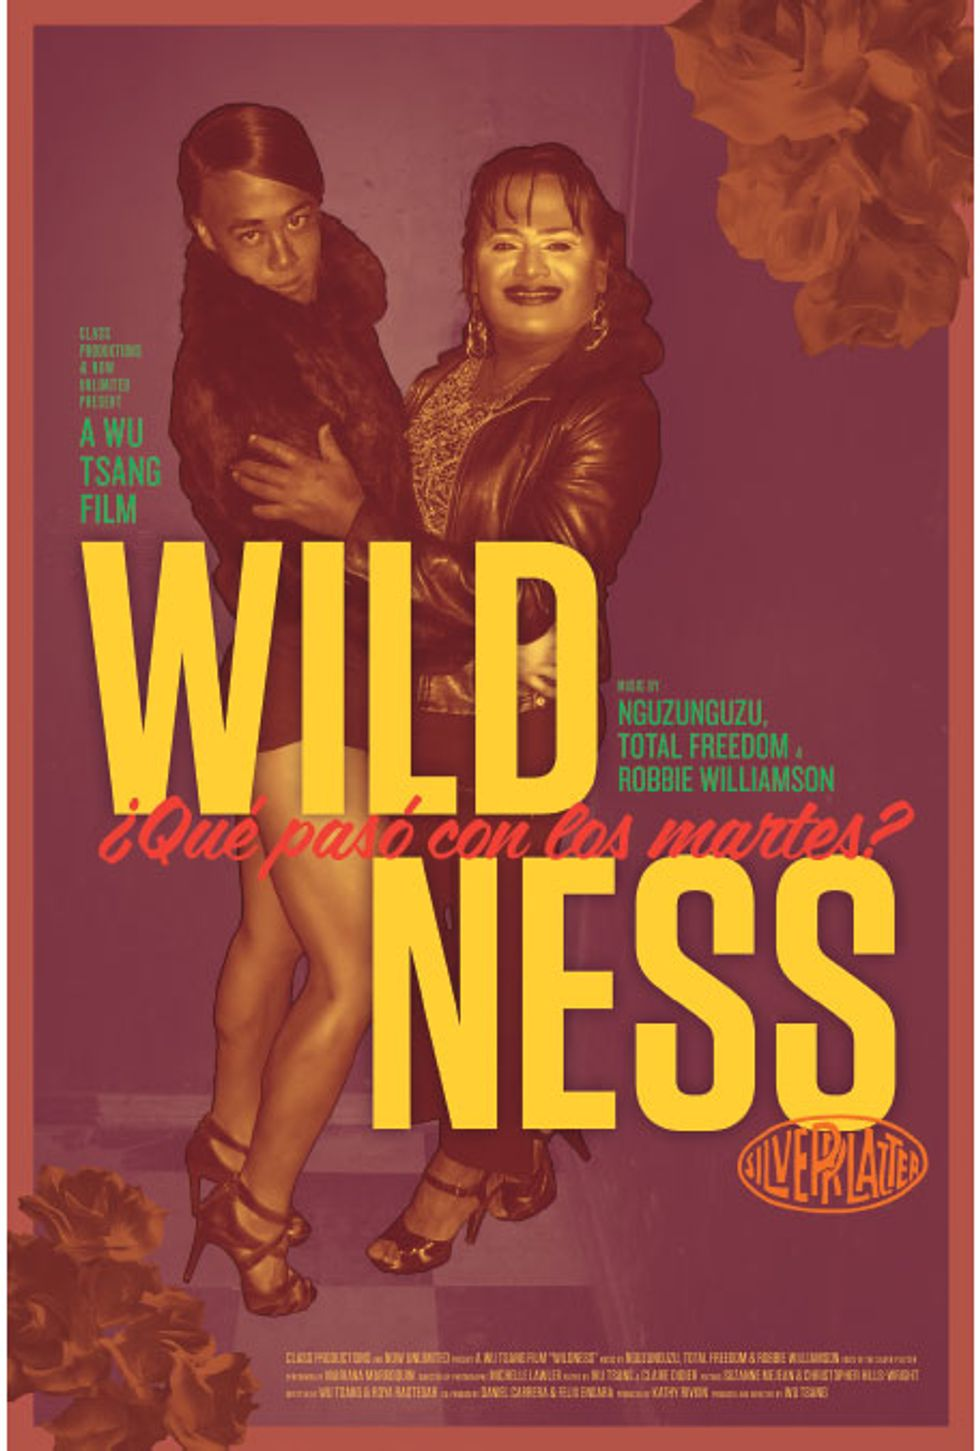 The Last Look: Wu Tsang's Wildness